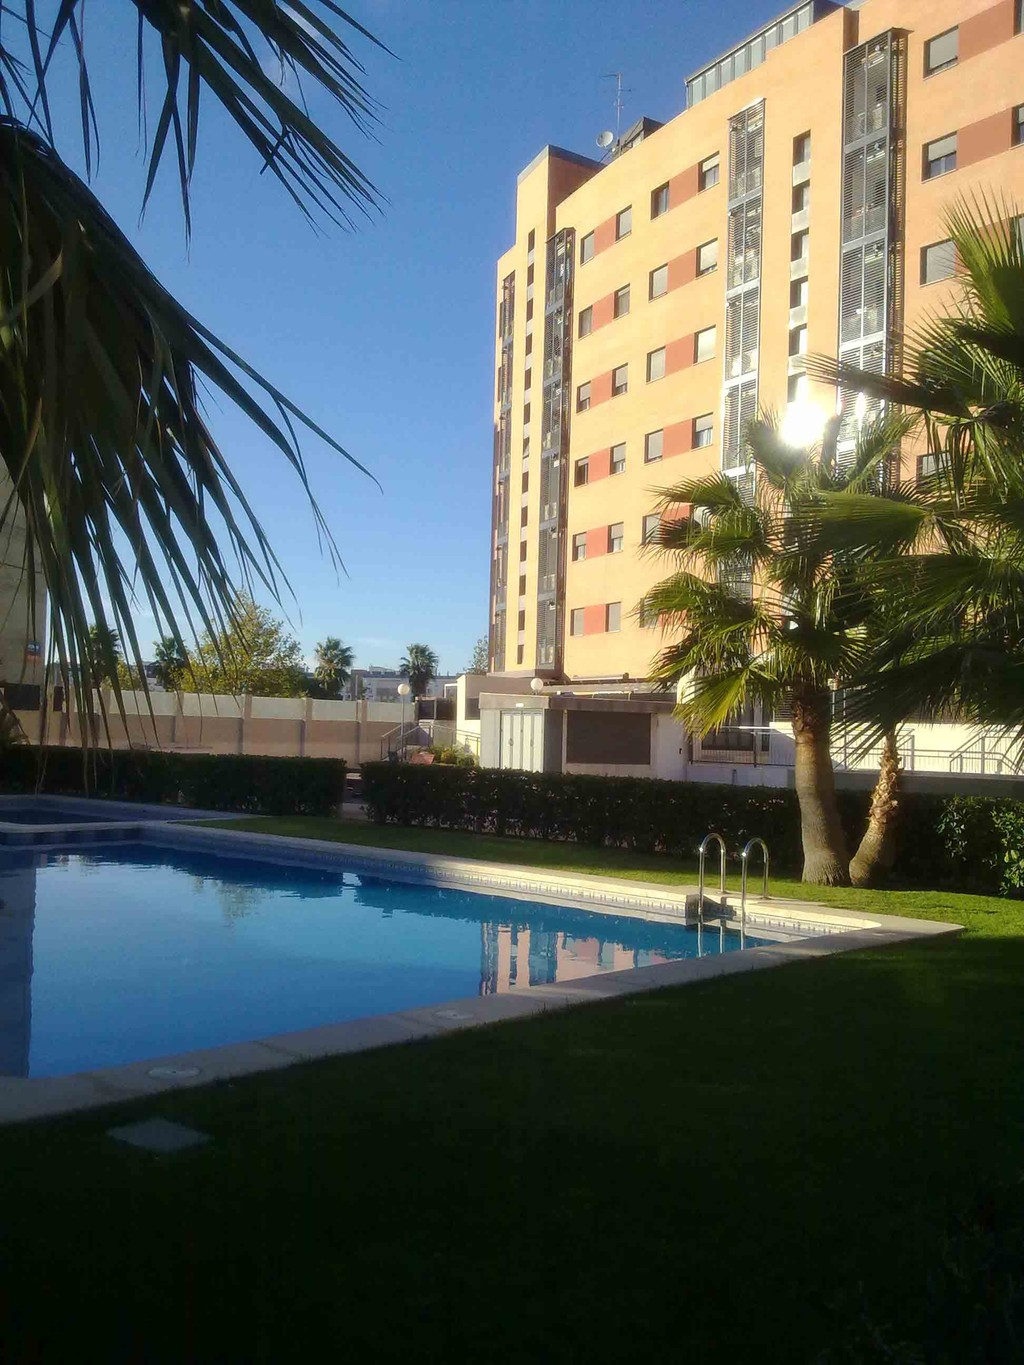 Valencia Piscina Piso Con Piscina En Valencia Shared Flat With Swimmingpool In Valencia